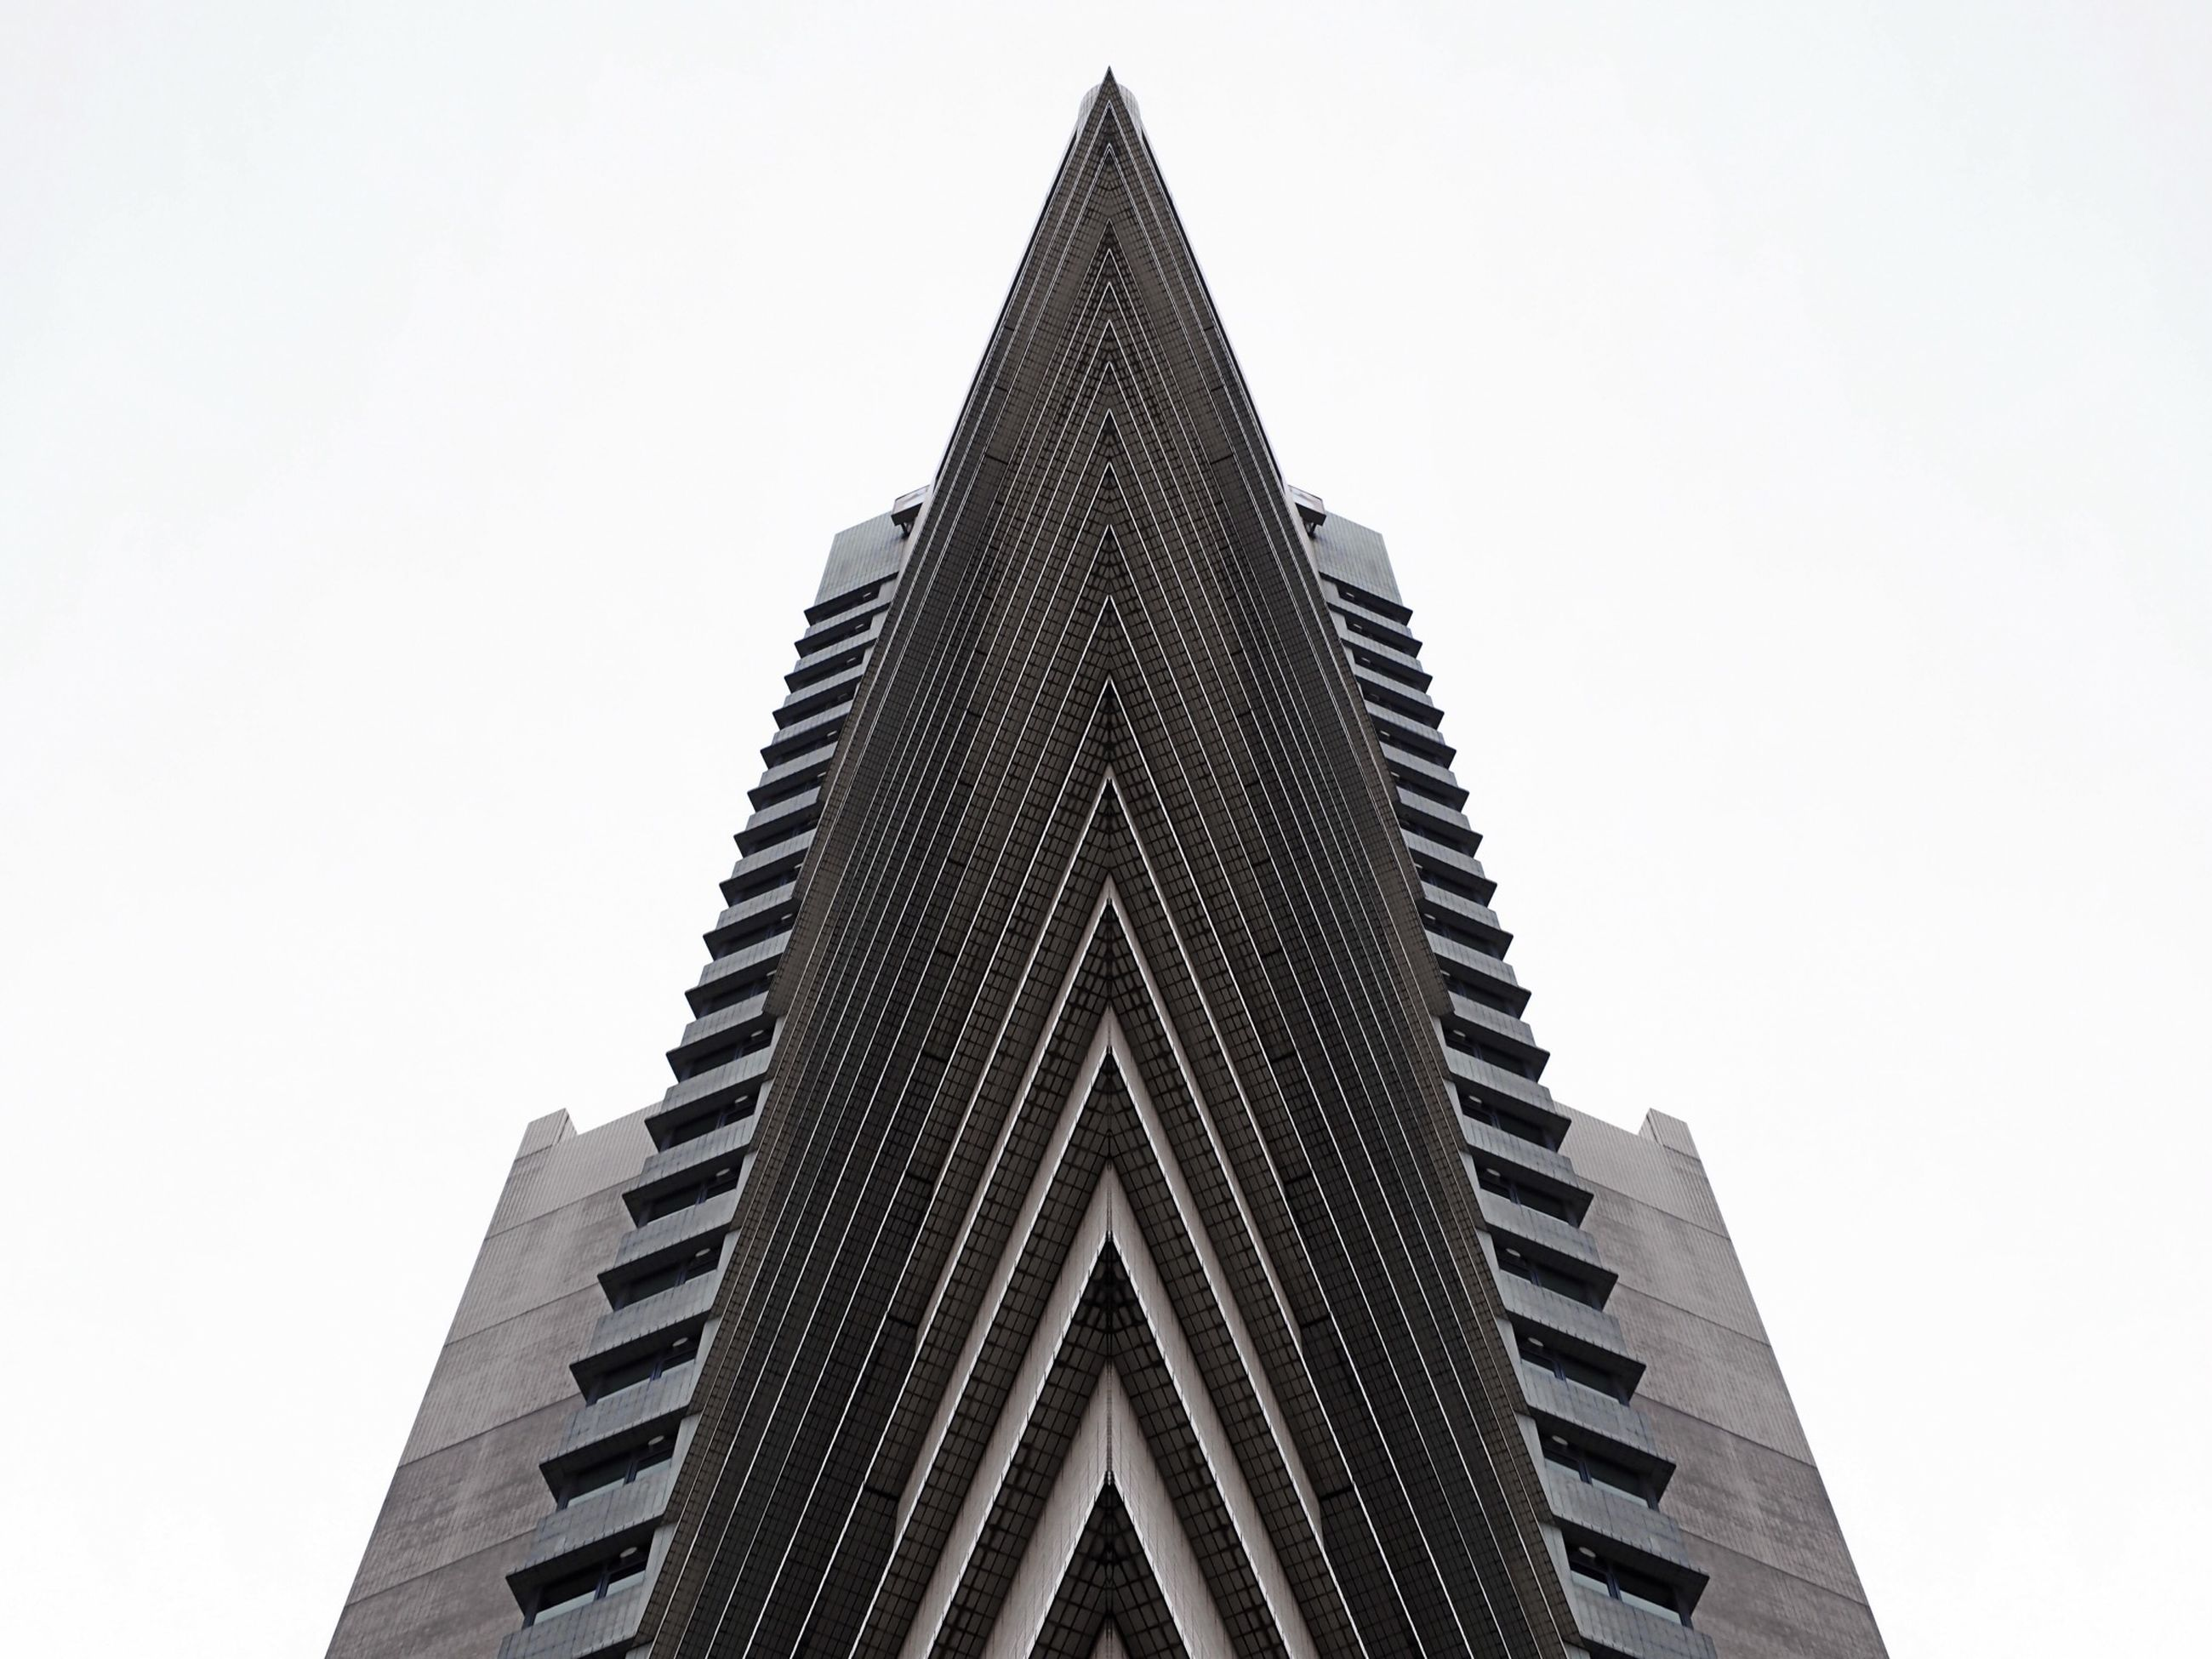 architecture, building exterior, low angle view, built structure, clear sky, tall - high, tower, skyscraper, city, modern, copy space, building, office building, tall, sky, day, outdoors, no people, high section, directly below